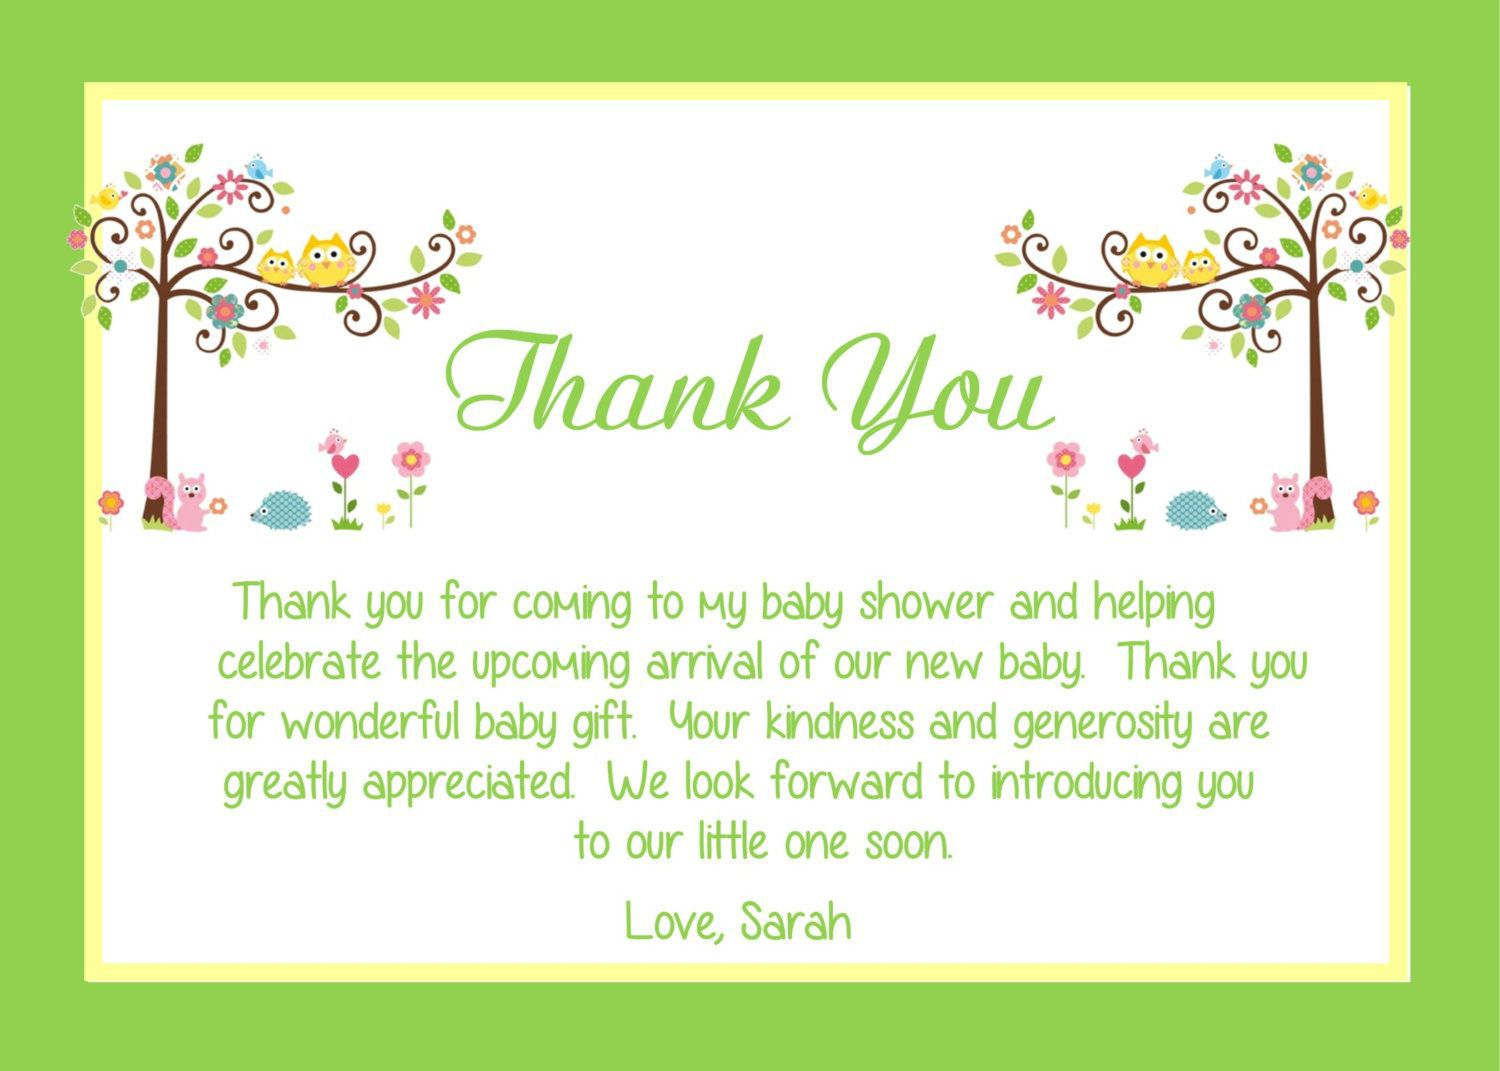 001 Beautiful Thank You Note Wording For Baby Shower Gift Sample  Card Example LetterFull